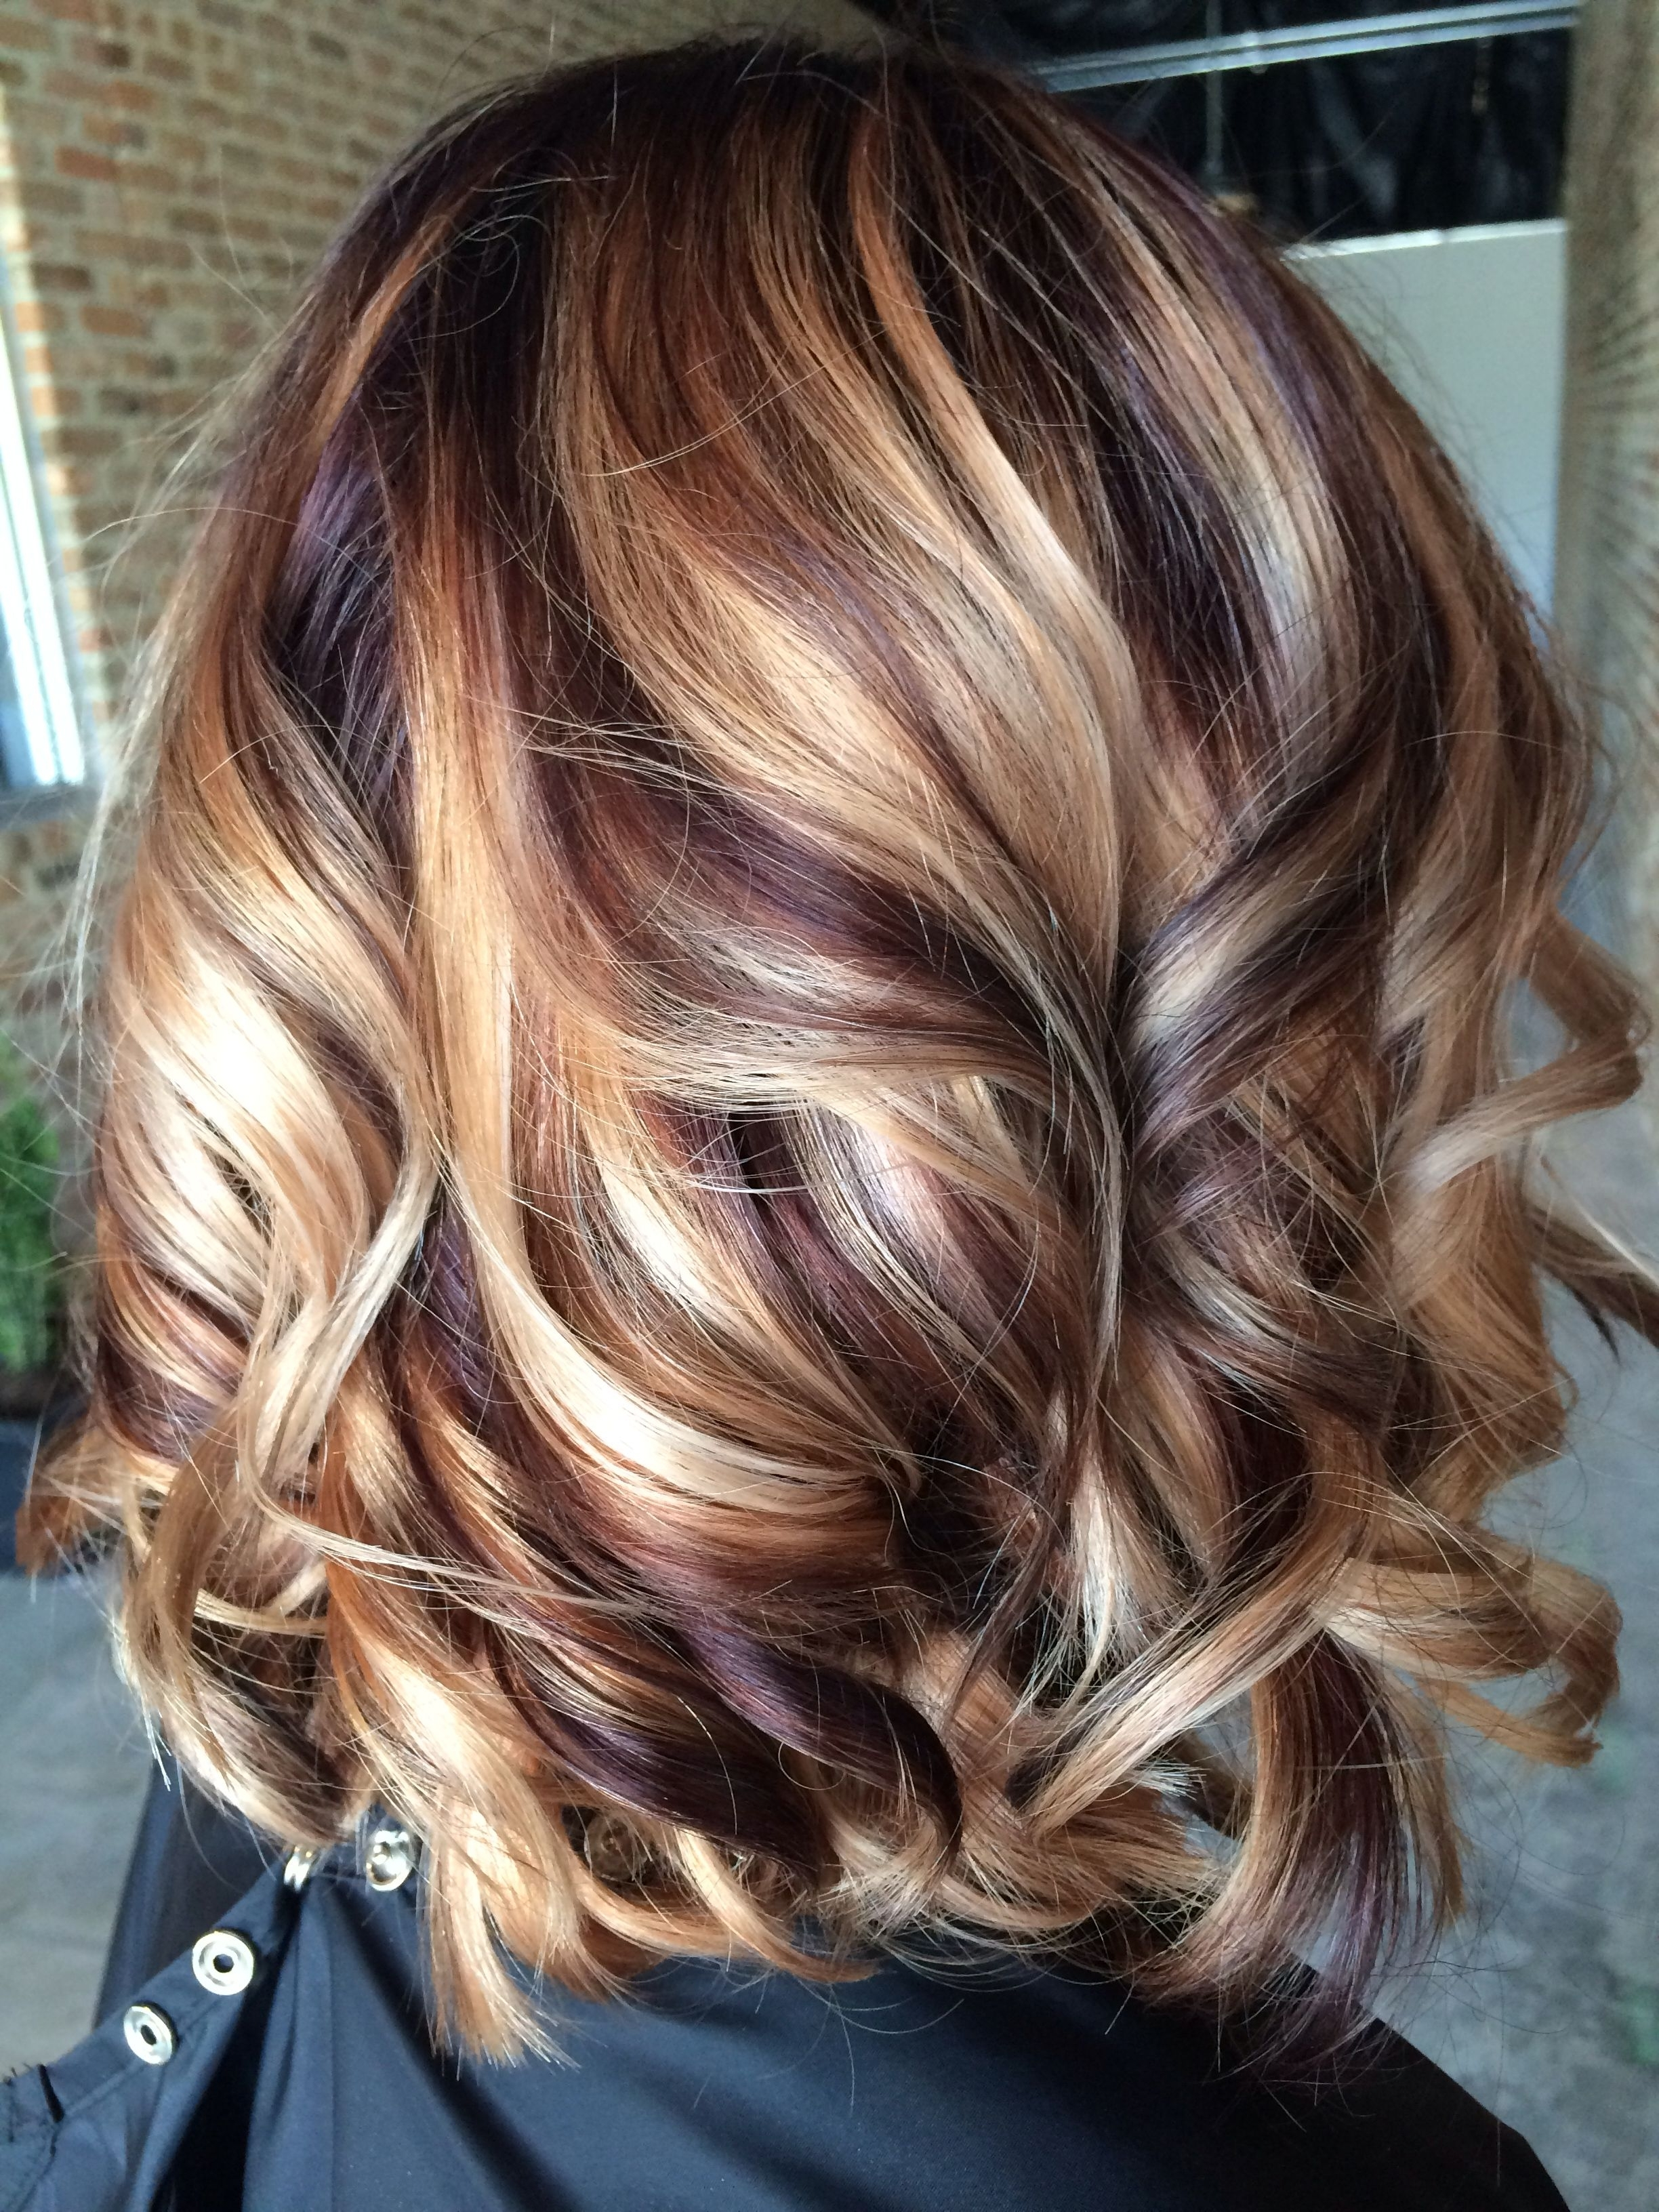 Widely Used Light Copper Hairstyles With Blonde Babylights In 16 Wonderful Medium Hairstyles For 2016 In (View 20 of 20)